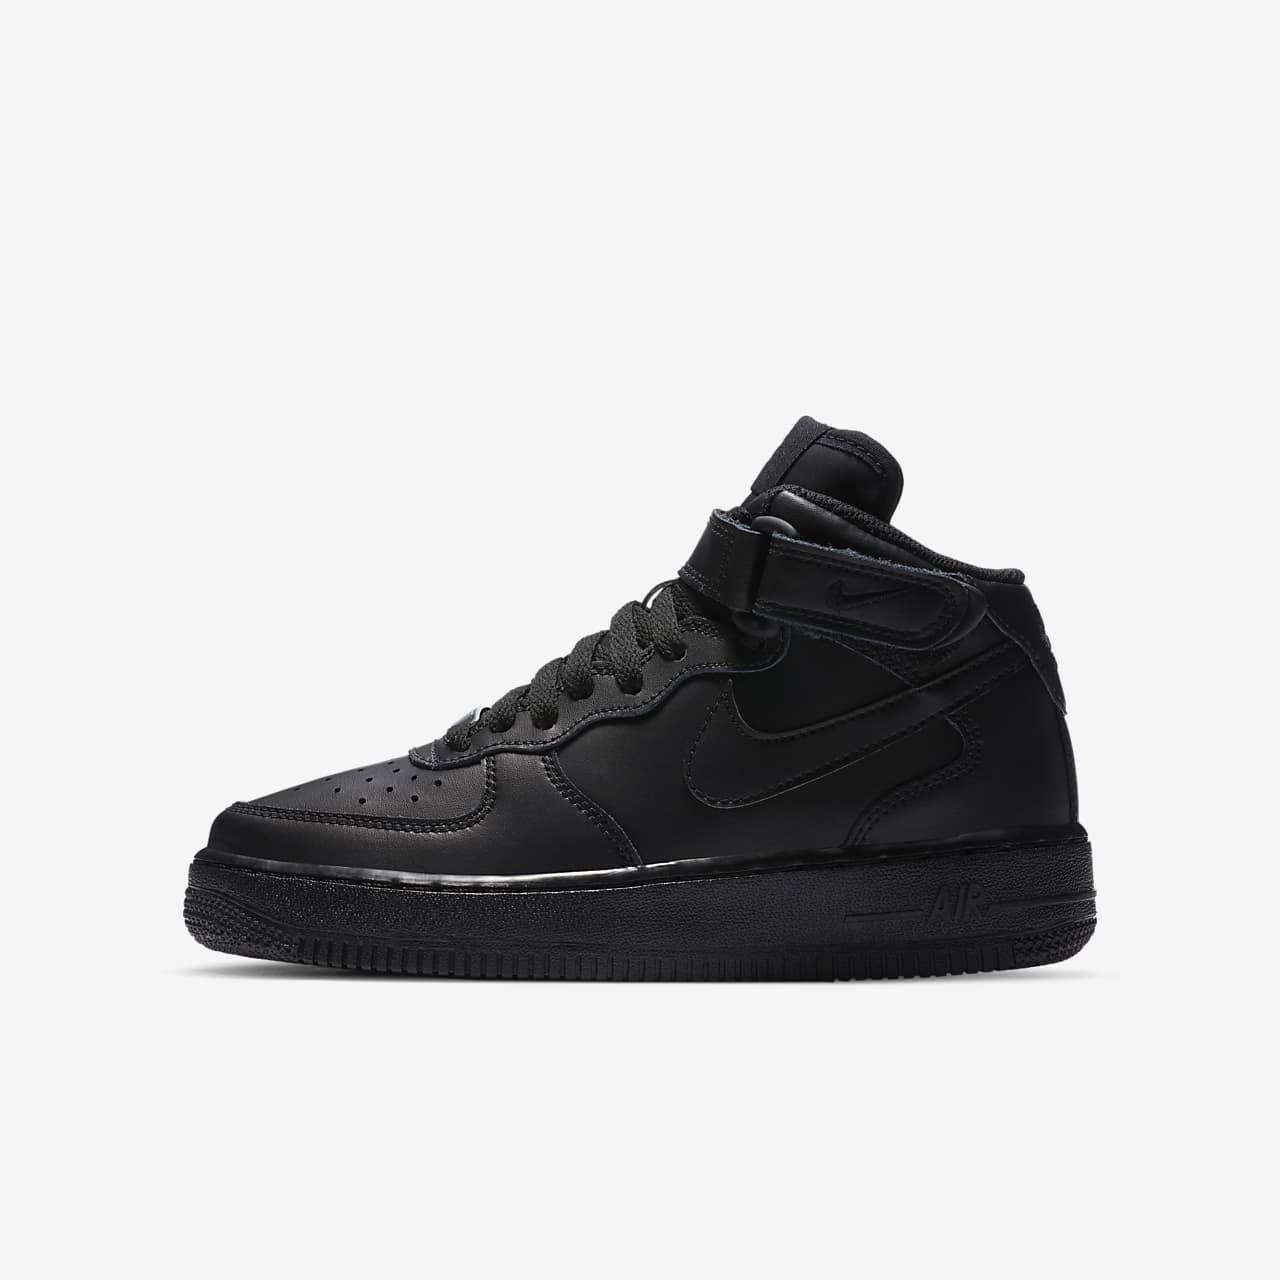 nike men's air force 1 mid basketball shoes nz